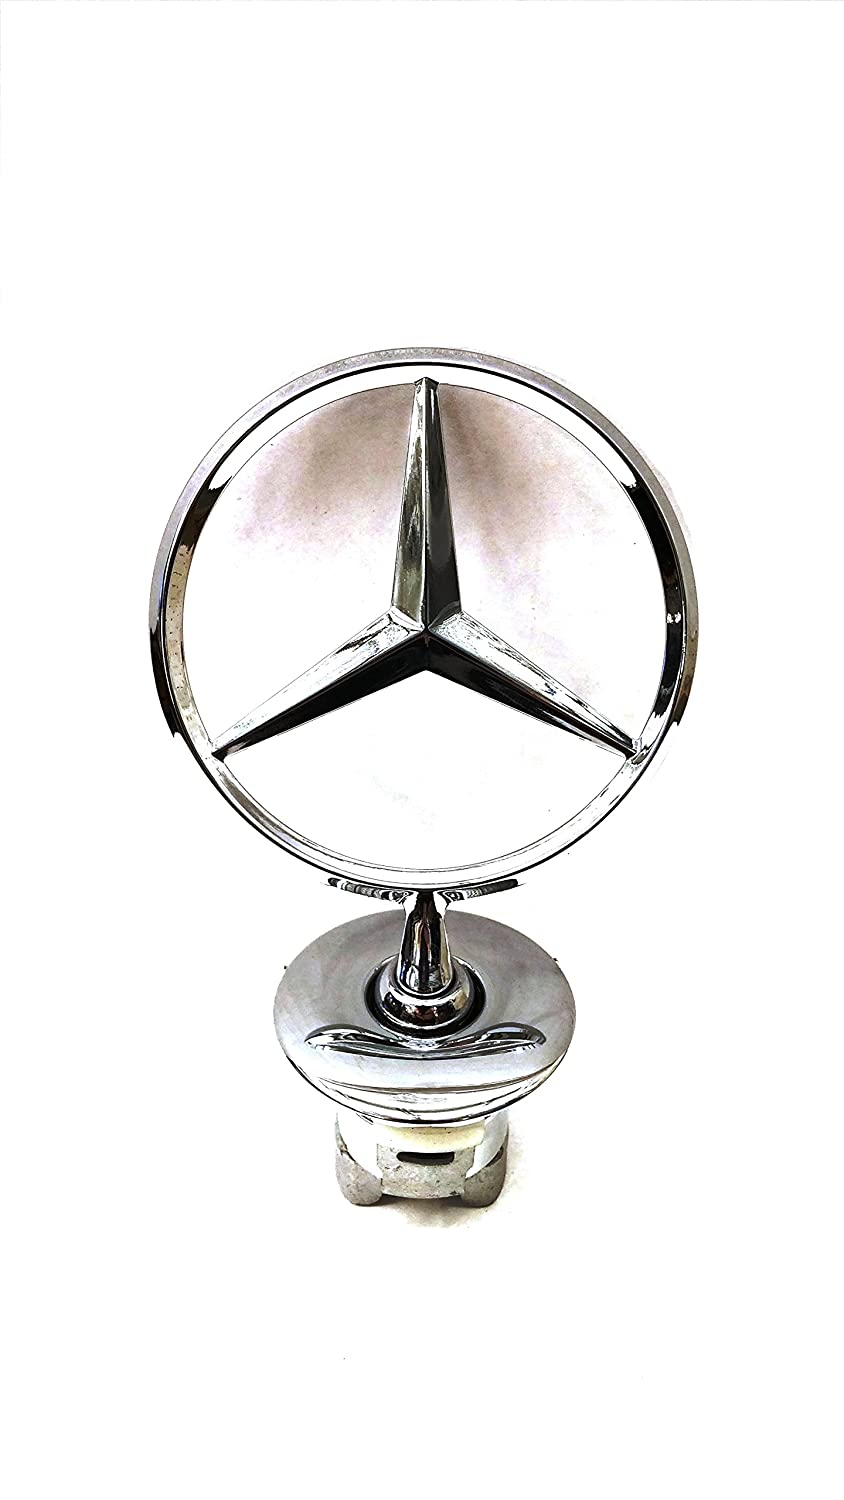 Genuine mercedes benz hood star for 2015 and newer c class for Mercedes benz s550 parts and accessories